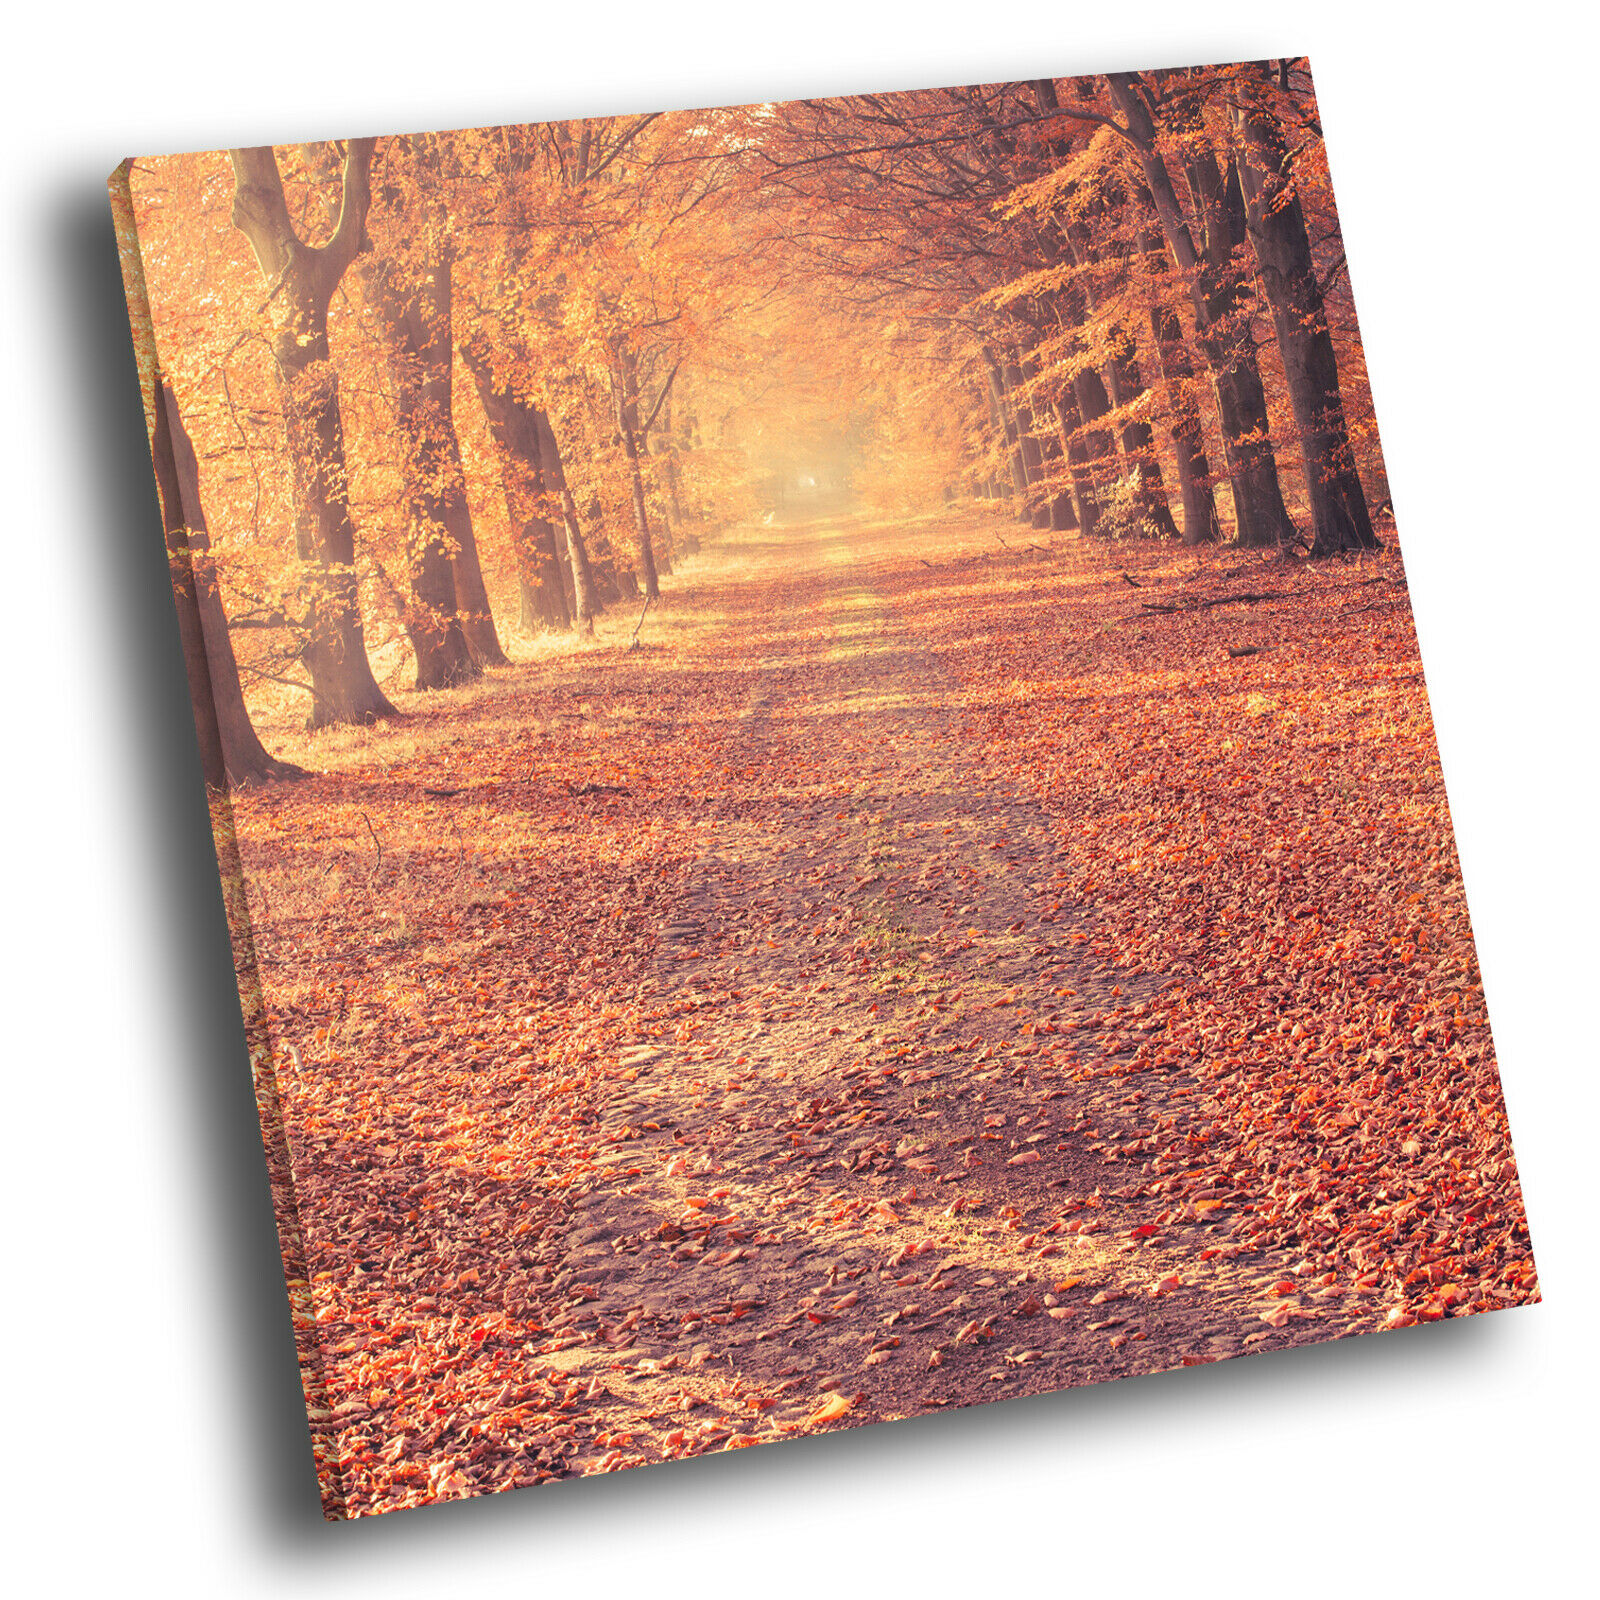 Orange braun Autmn Trees Square Scenic Canvas Wall Art Large Picture Print